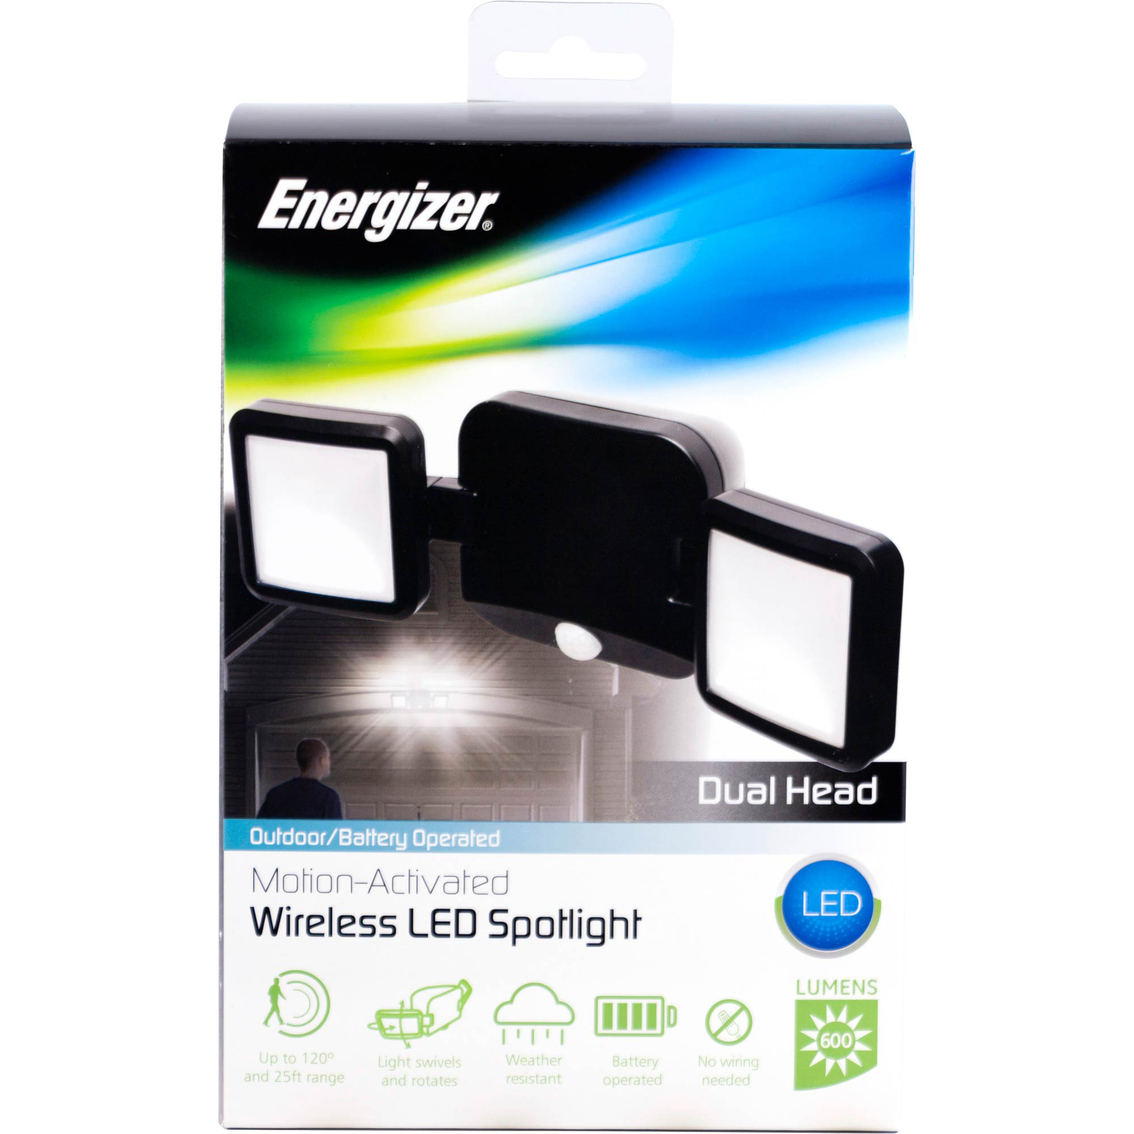 Wondrous Energizer Dual Head Motion Sensing Battery Operated Outdoor Security Wiring 101 Archstreekradiomeanderfmnl